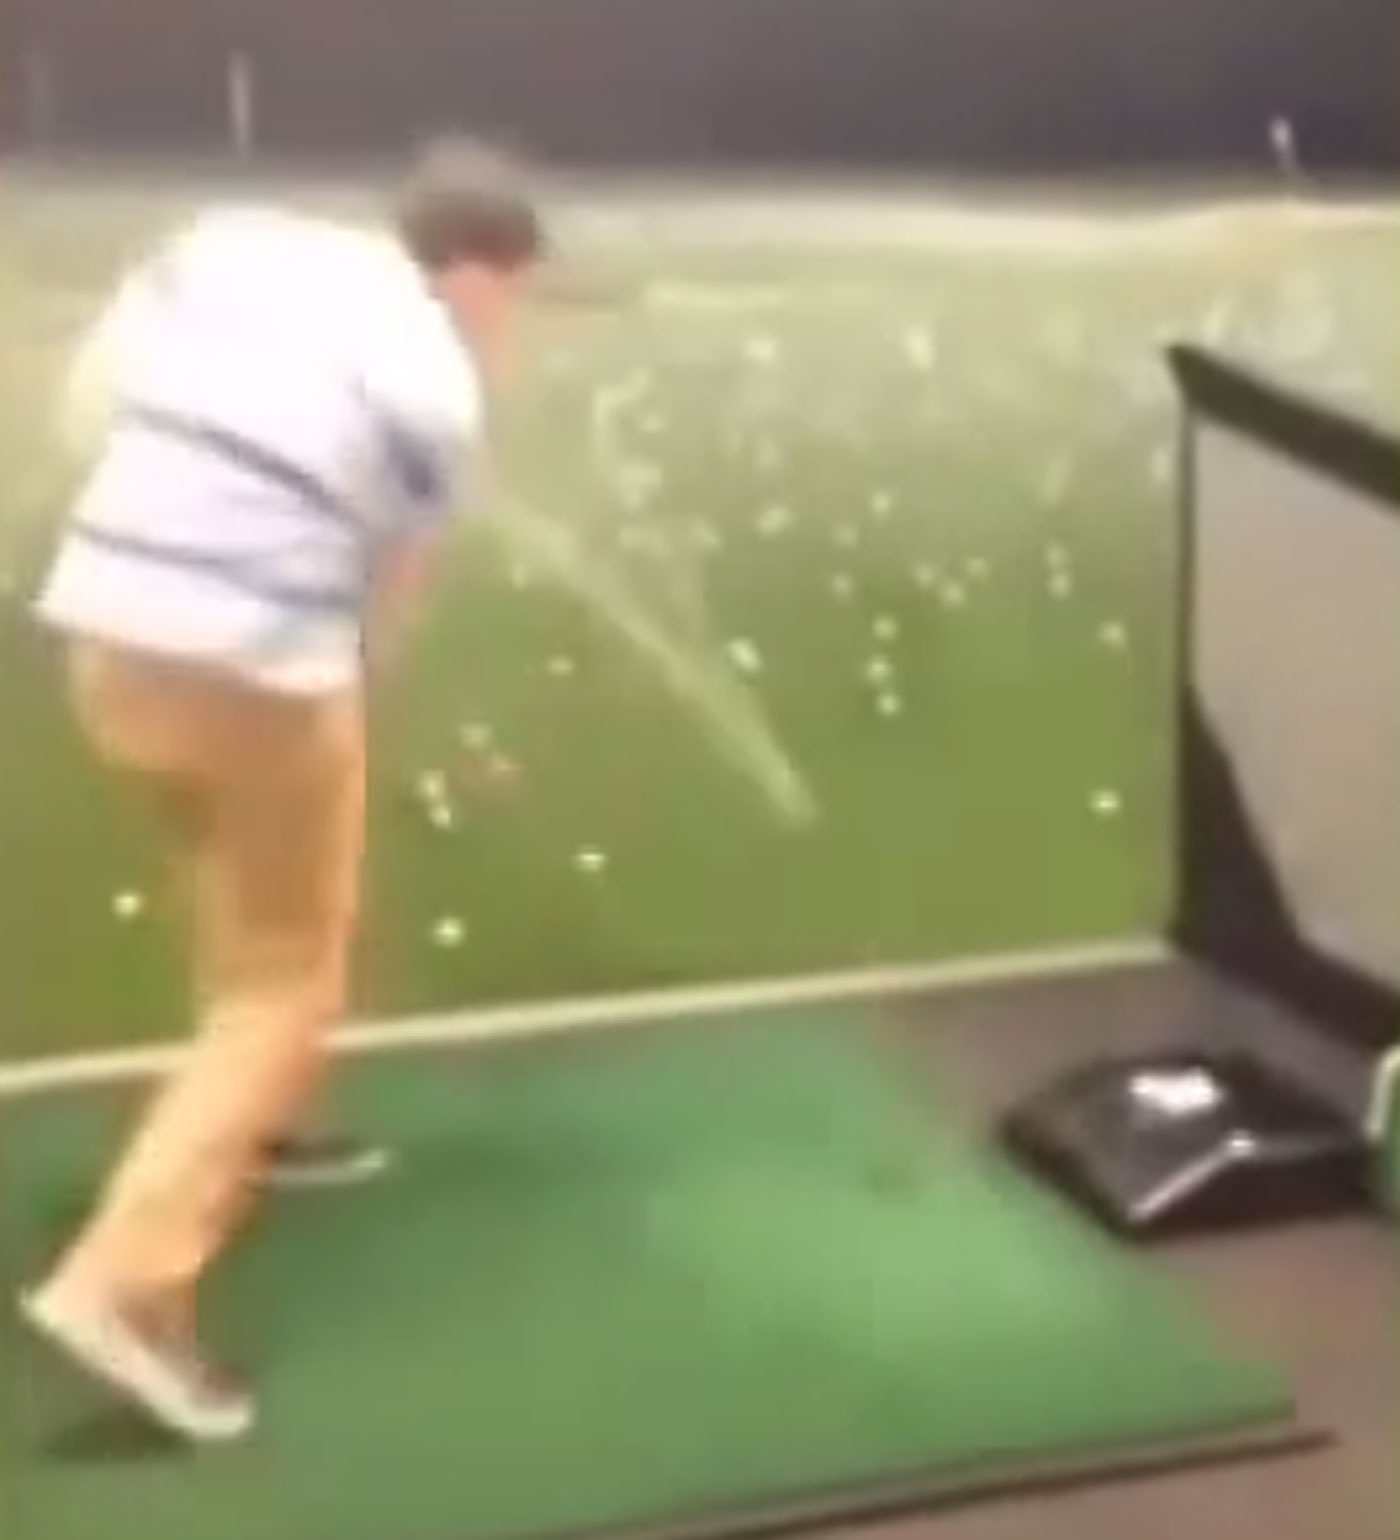 Guy hits self in face with ball at driving range